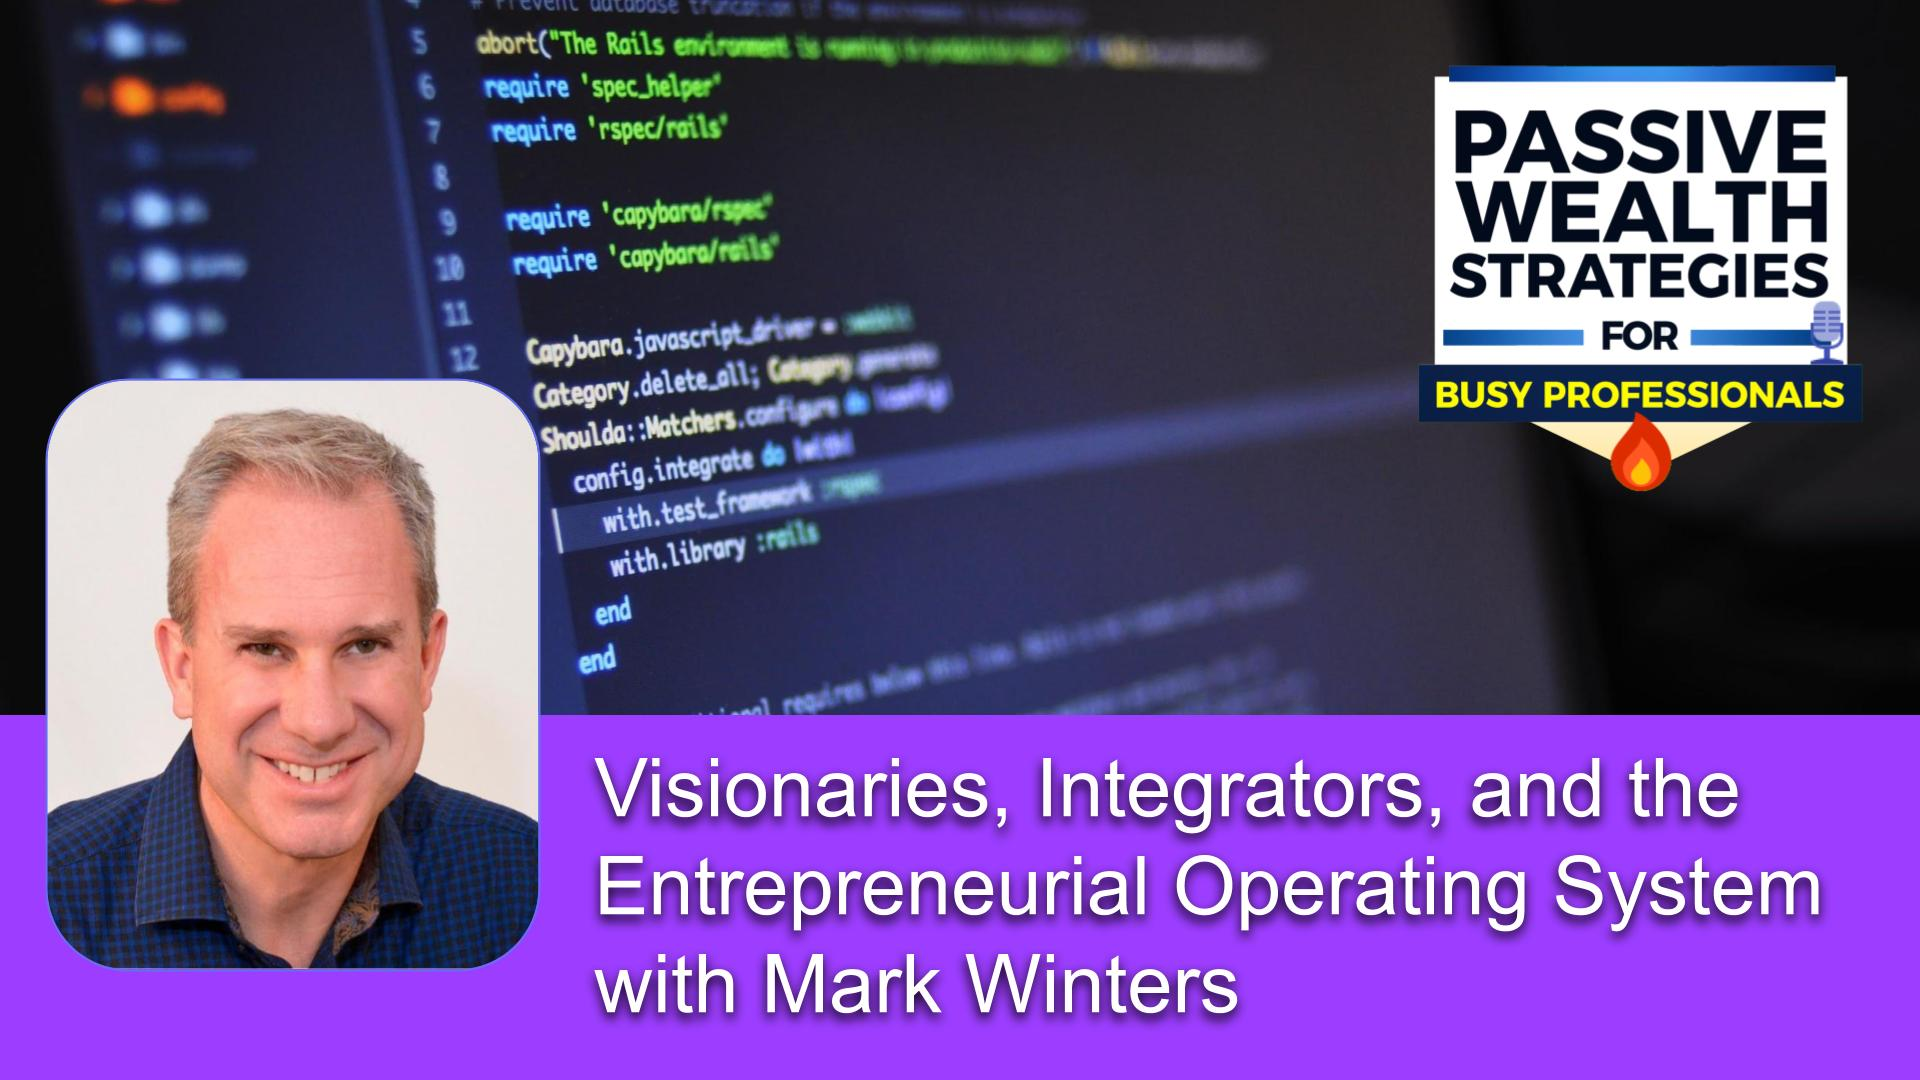 181 Visionaries, Integrators, and the Entrepreneurial Operating System with Mark Winters